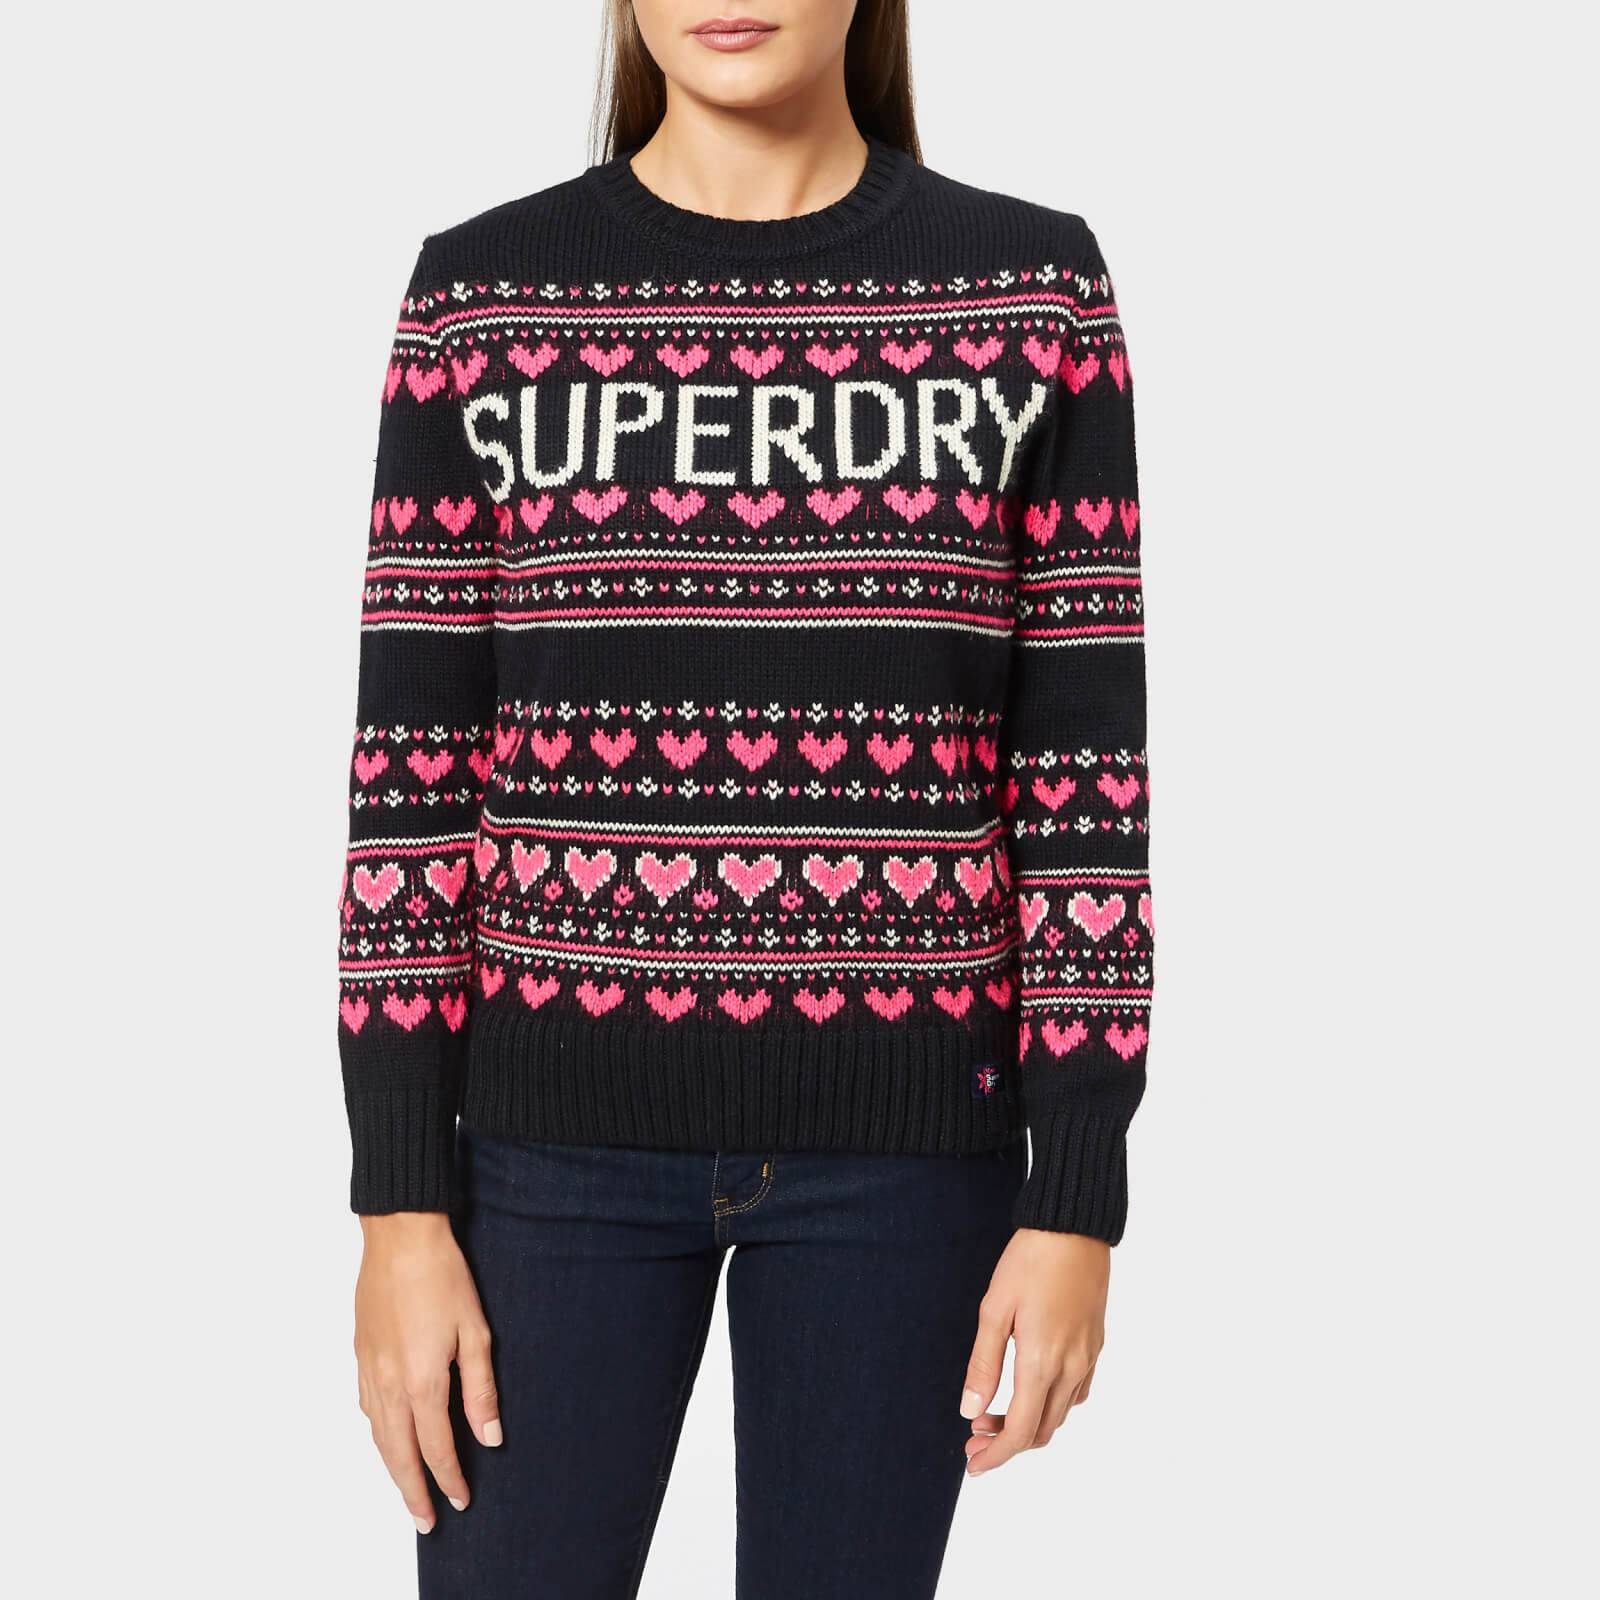 Superdry Women's Cleveland Fairisle Knit Jumper - Soft Navy - UK 14 - Blue